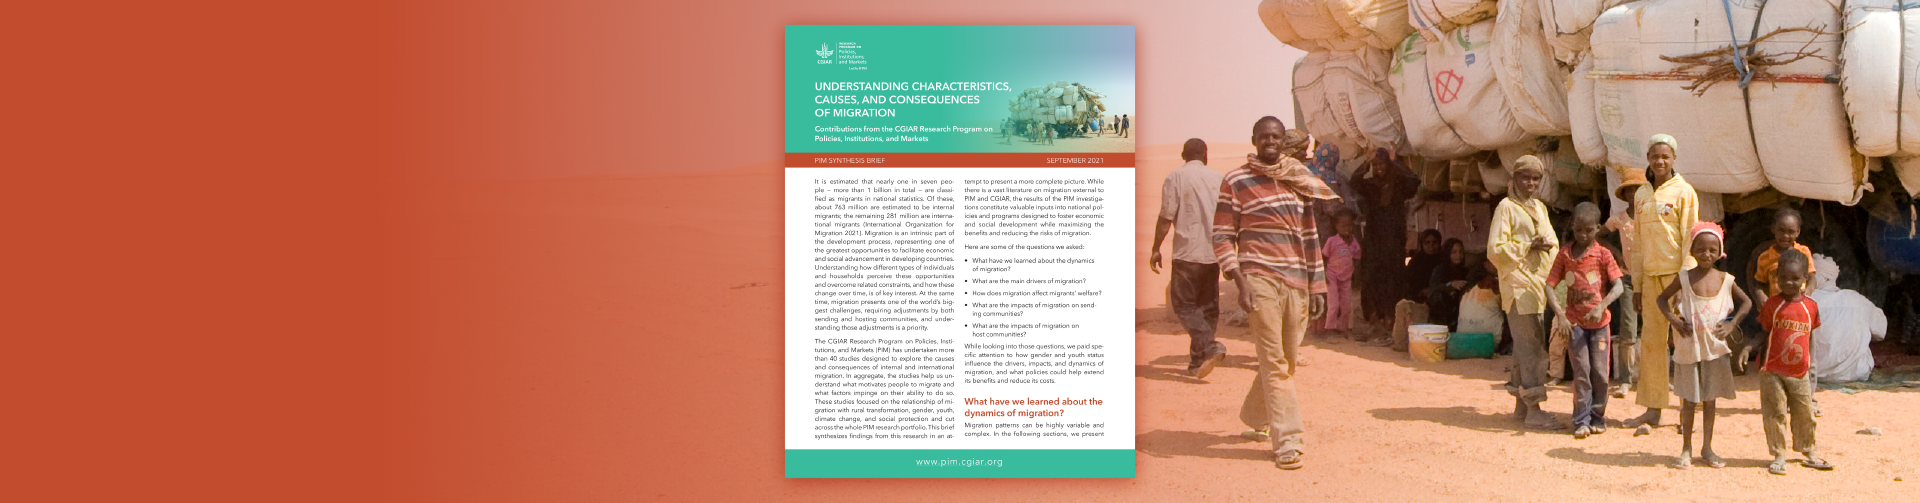 Understanding characteristics, causes, and consequences of migration: Contributions from the CGIAR Research Program on Policies, Institutions, and Markets